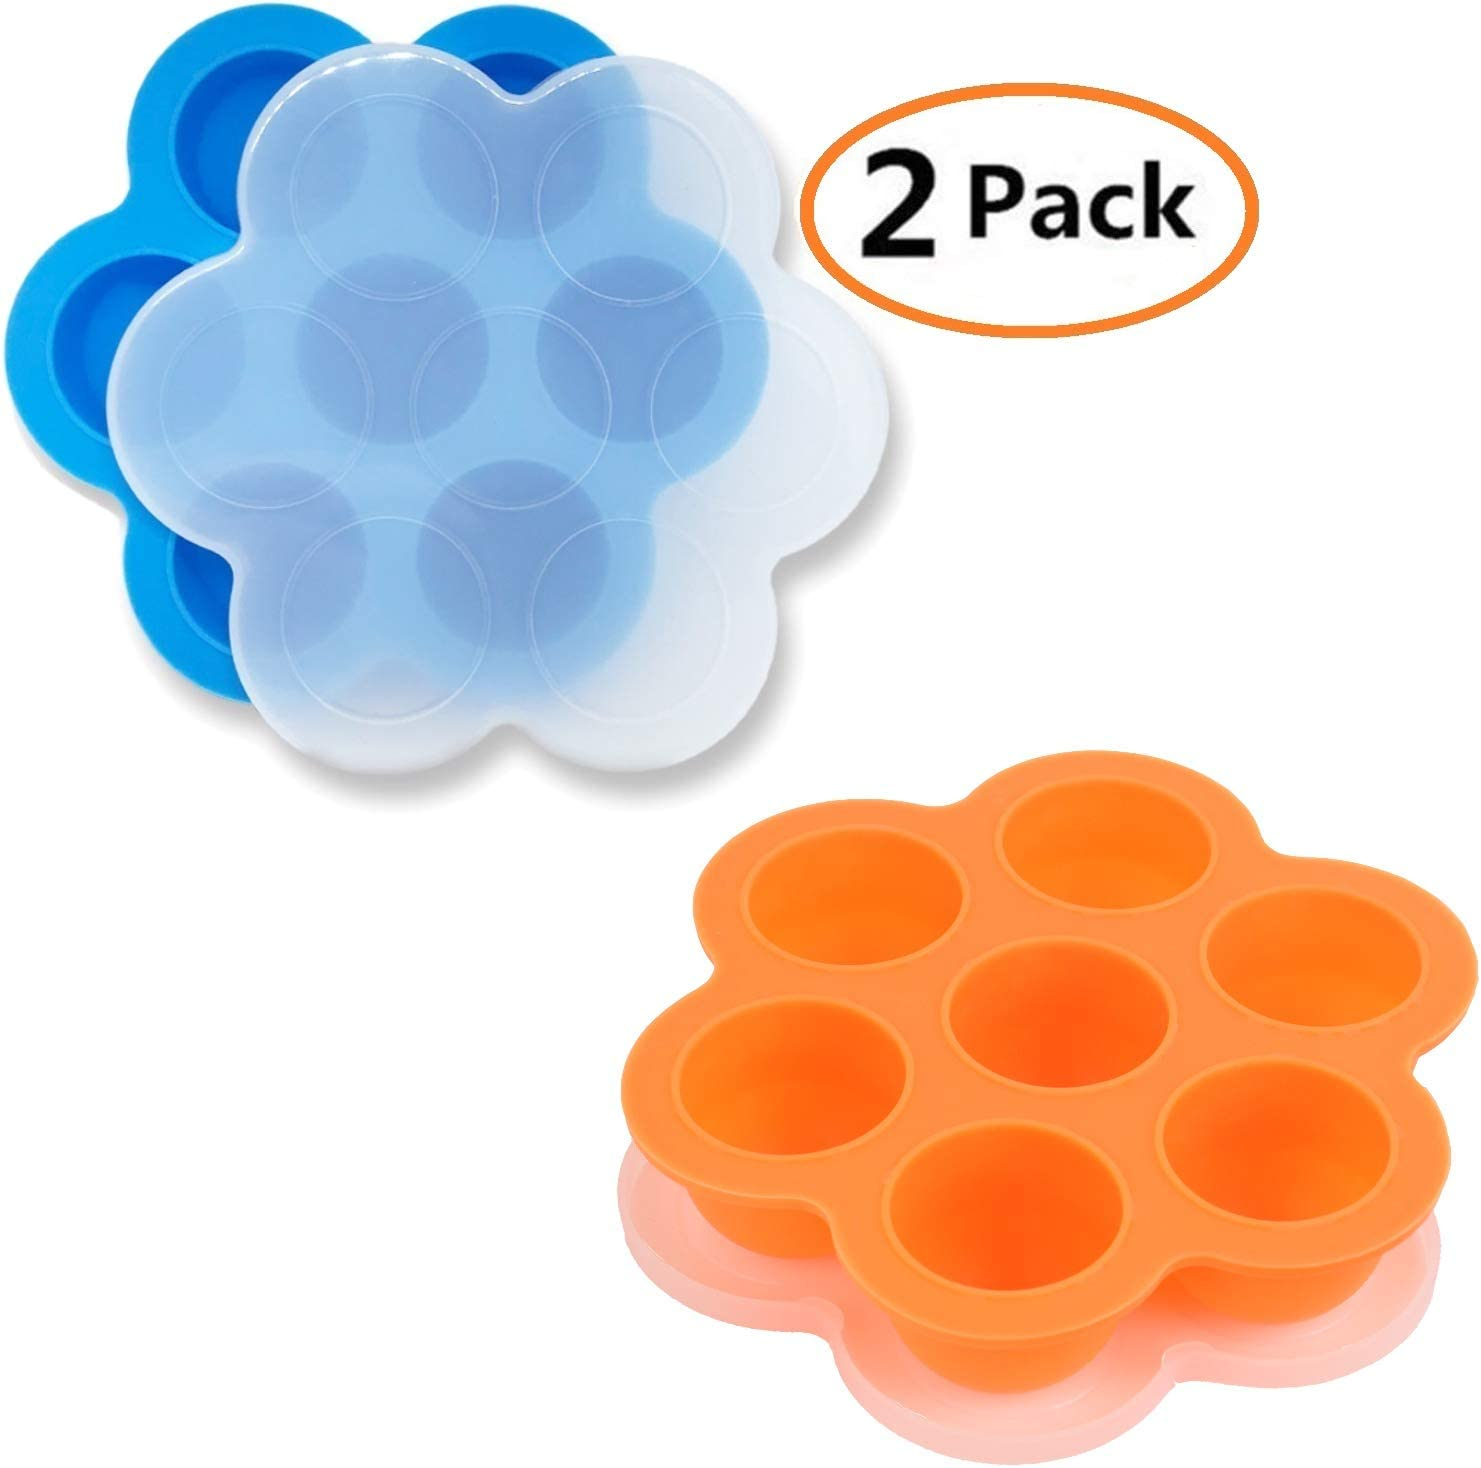 GOKCEN's Silicone Egg Bites Molds For Instant Pot Accessories - Fit Instant Pot 3,5,6,8 qt Pressure Cooker - Baby Food Freezer Tray with Lid - Reusable Storage Container - 2 Pack (Blue & Orange)